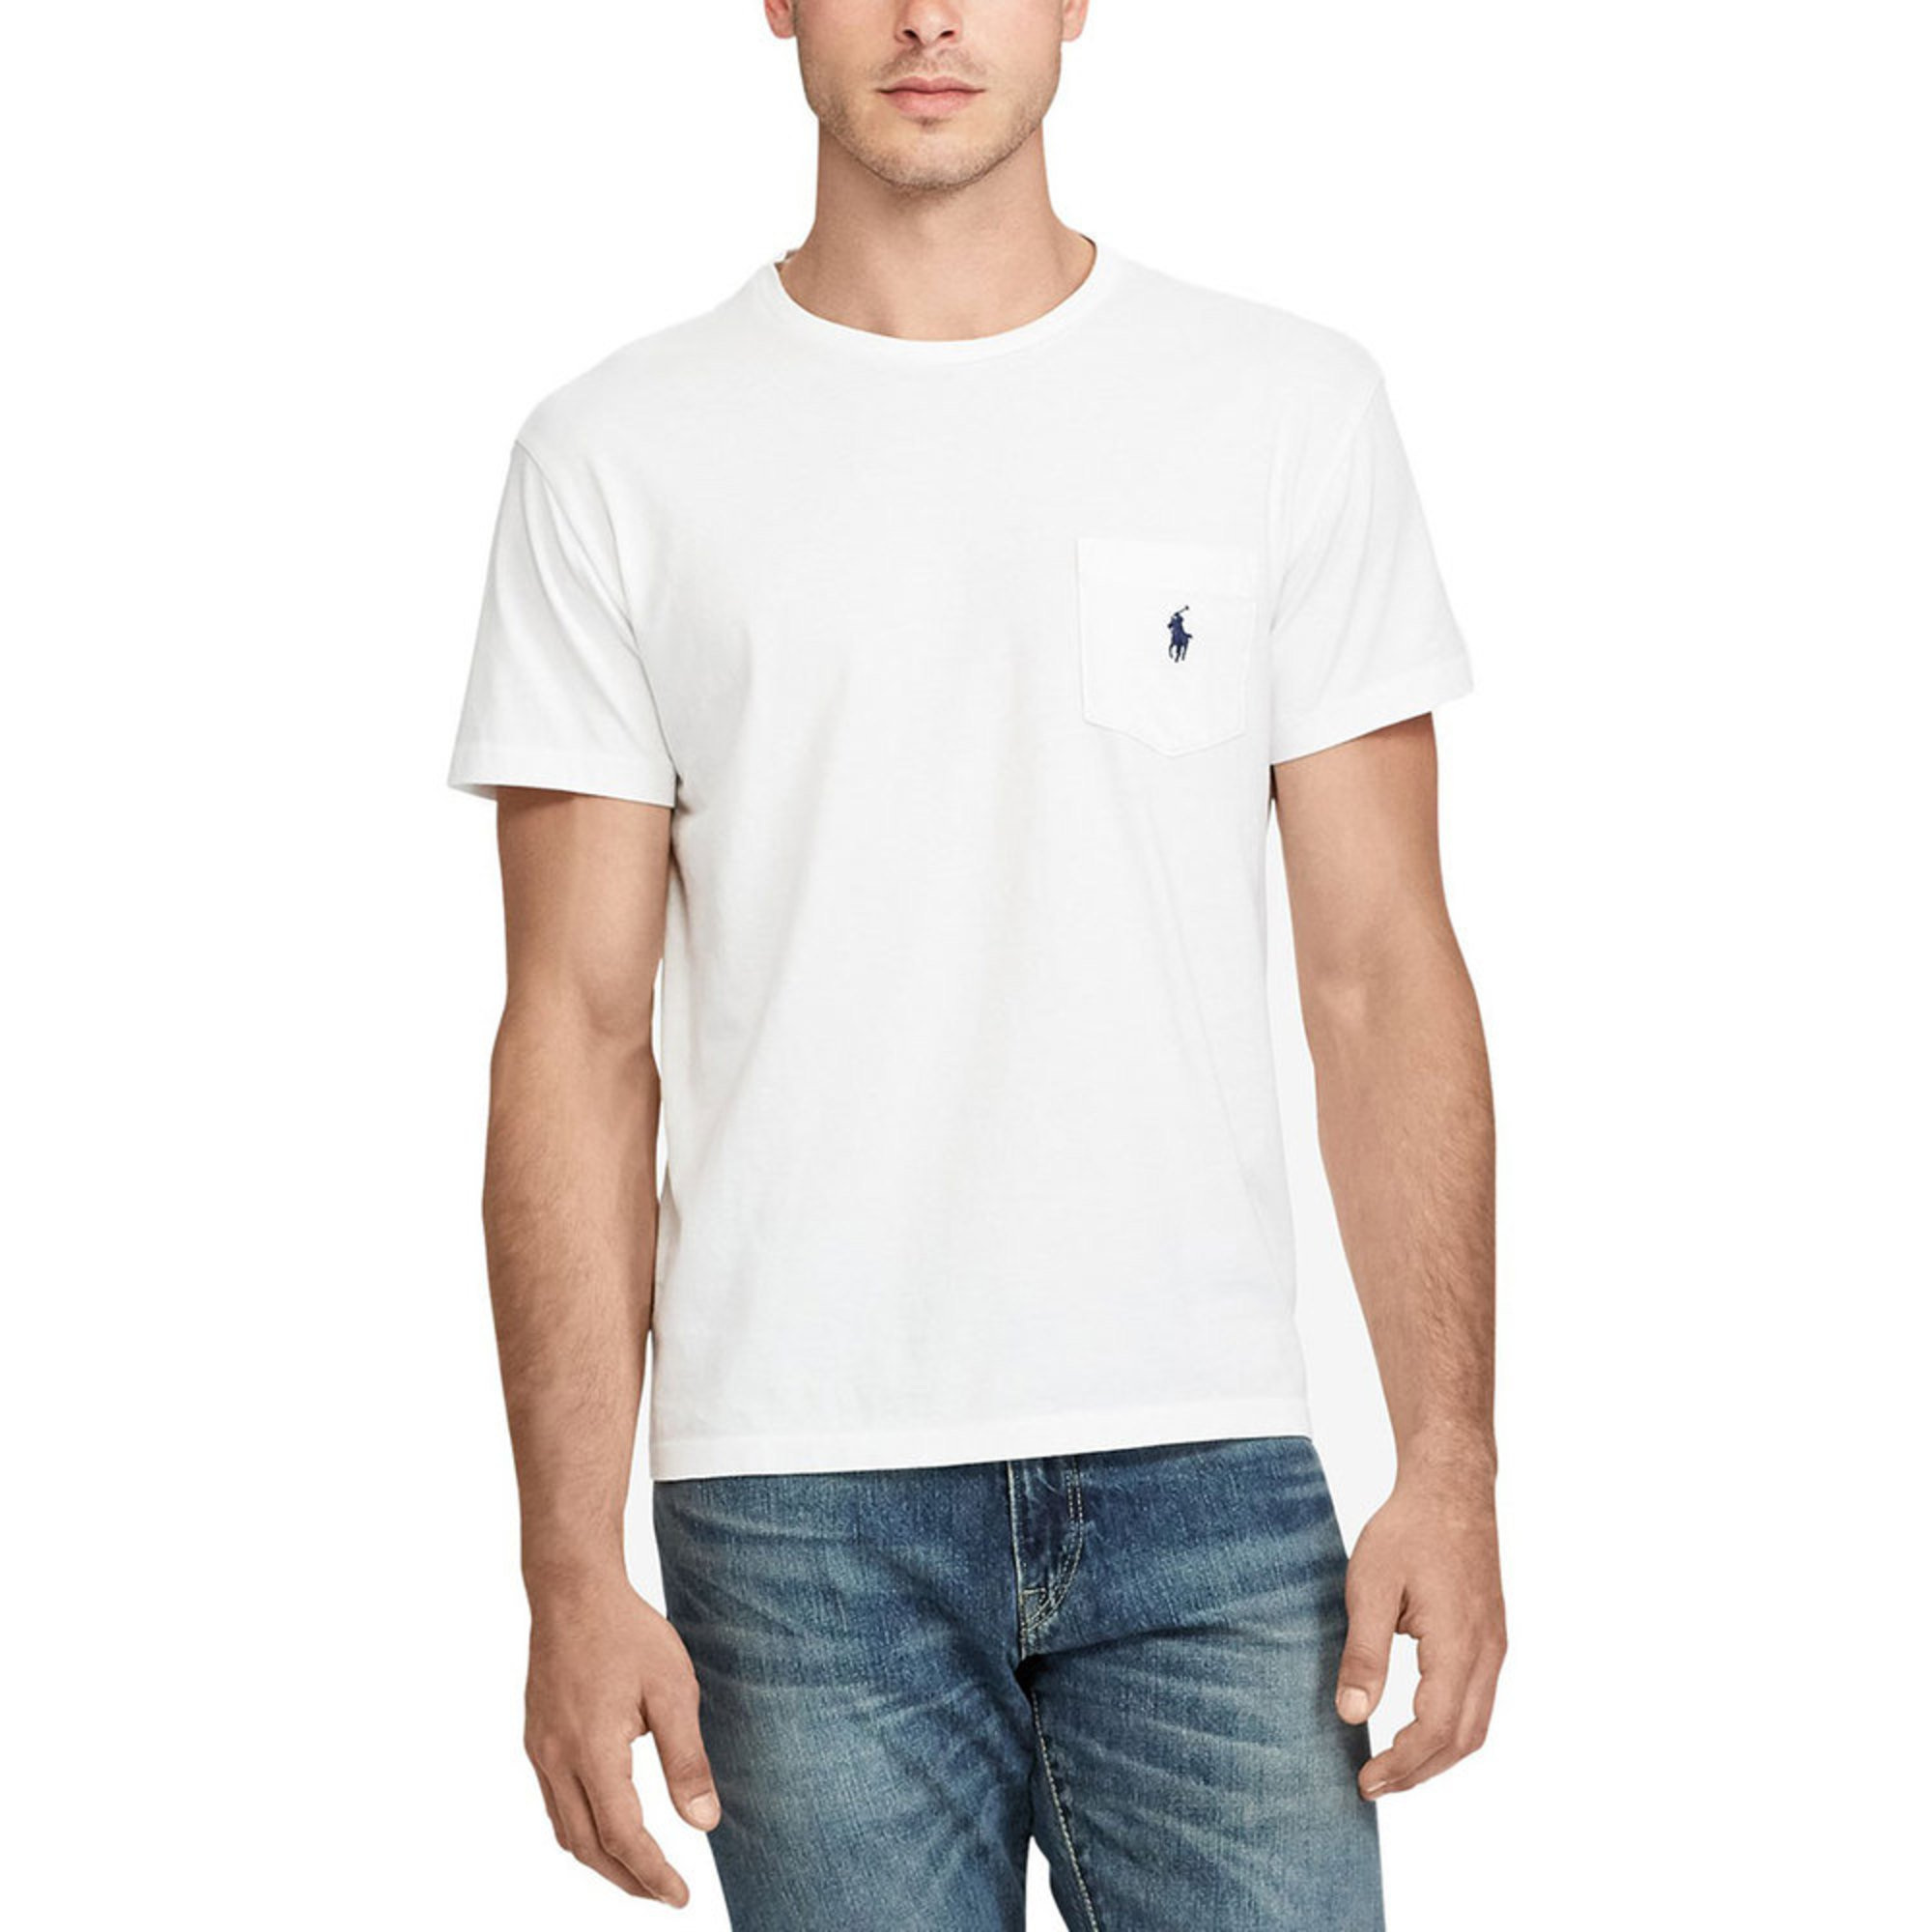 Polo Ralph Crew Sleeve Pocketed In White Short Lauren Neck Tee fb76gy